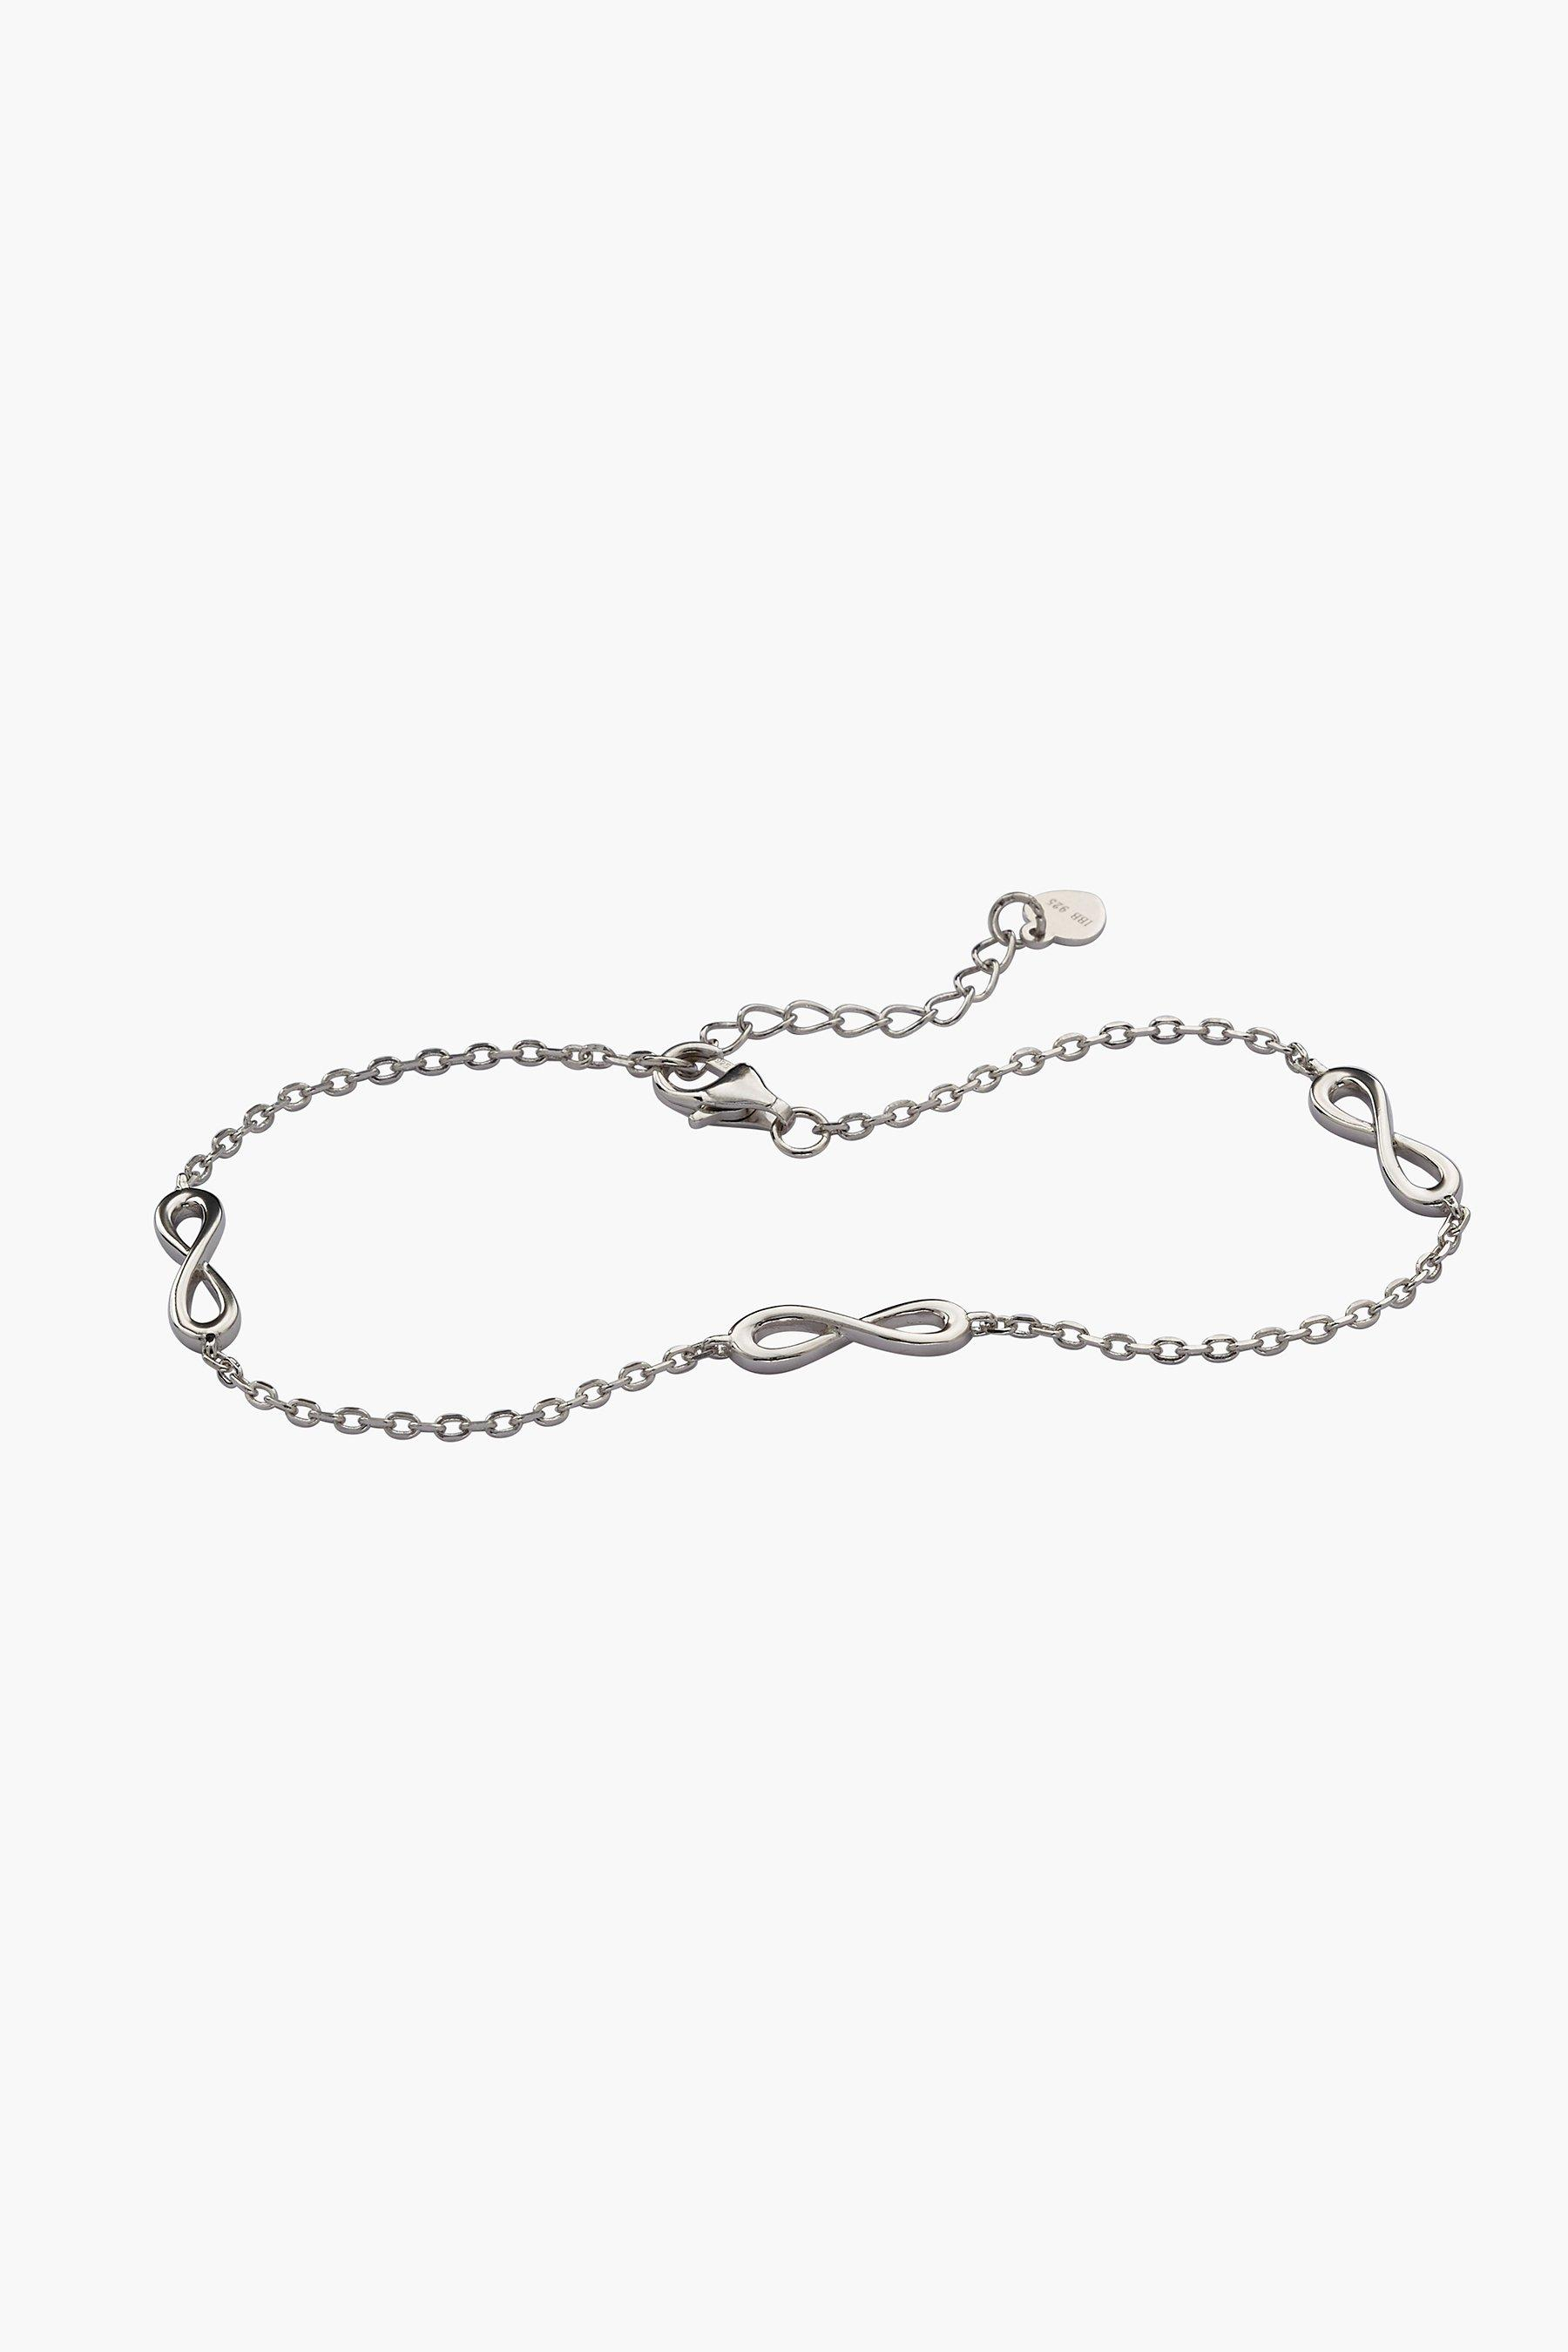 sterling silver rhodium plated three figure 8 7.5 +1 inch bracelet